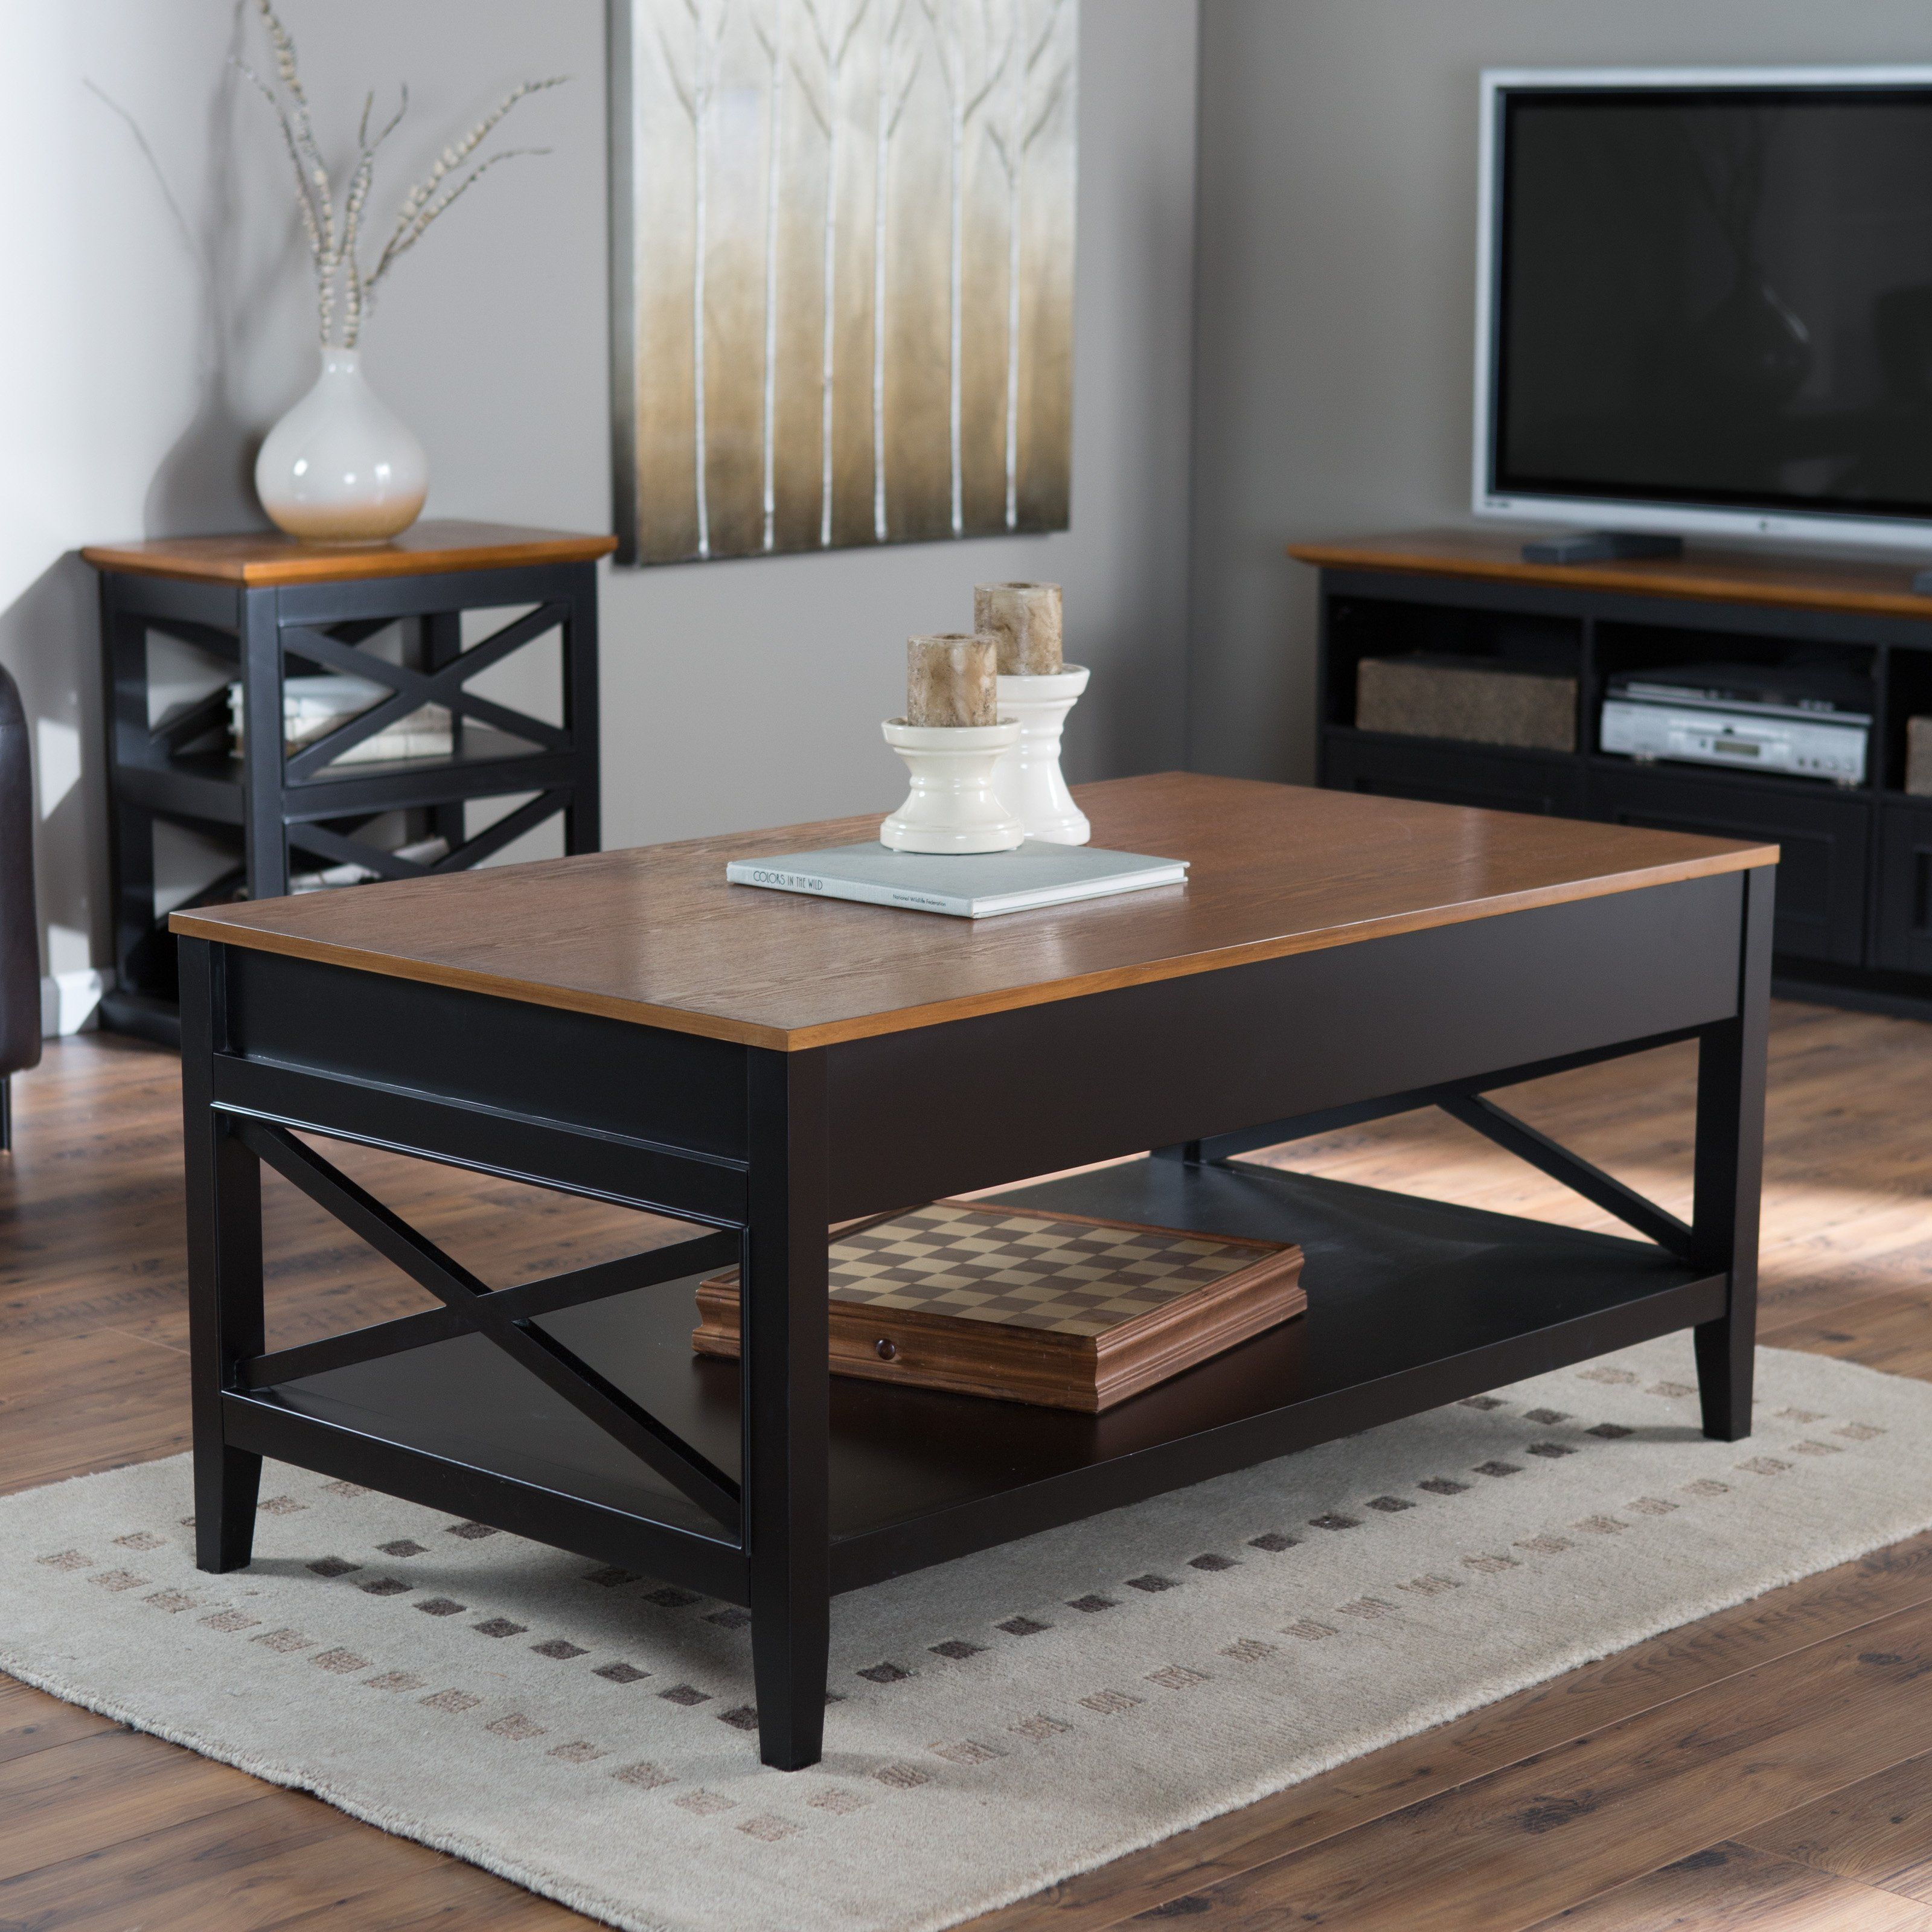 Have To Have It Belham Living Hampton Lift Top Coffee Table